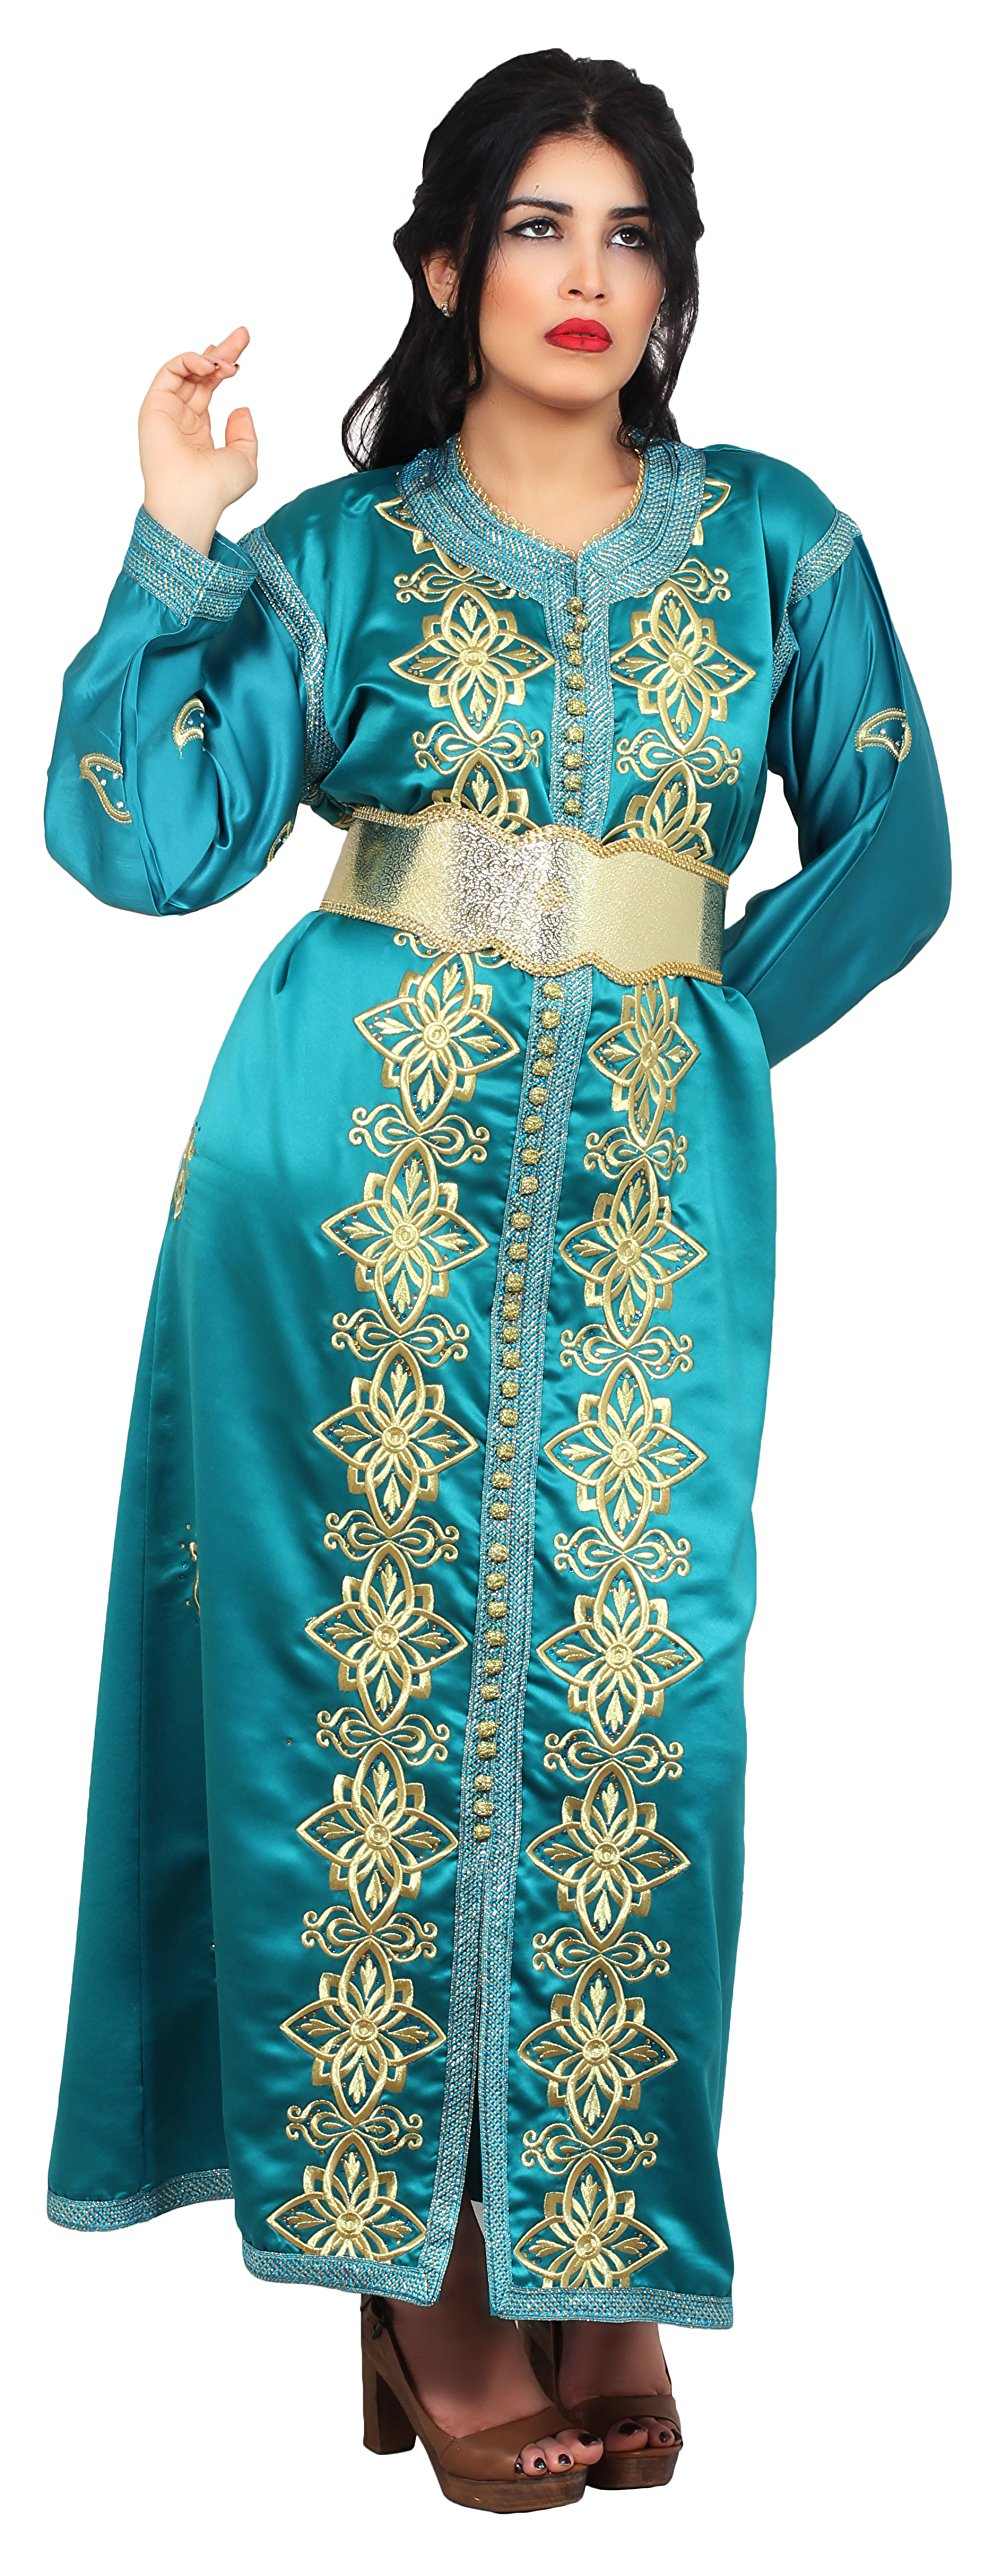 Moroccan Caftan Women Handmade Embroidery SMALL to LARGE Complimentary Belt Teal